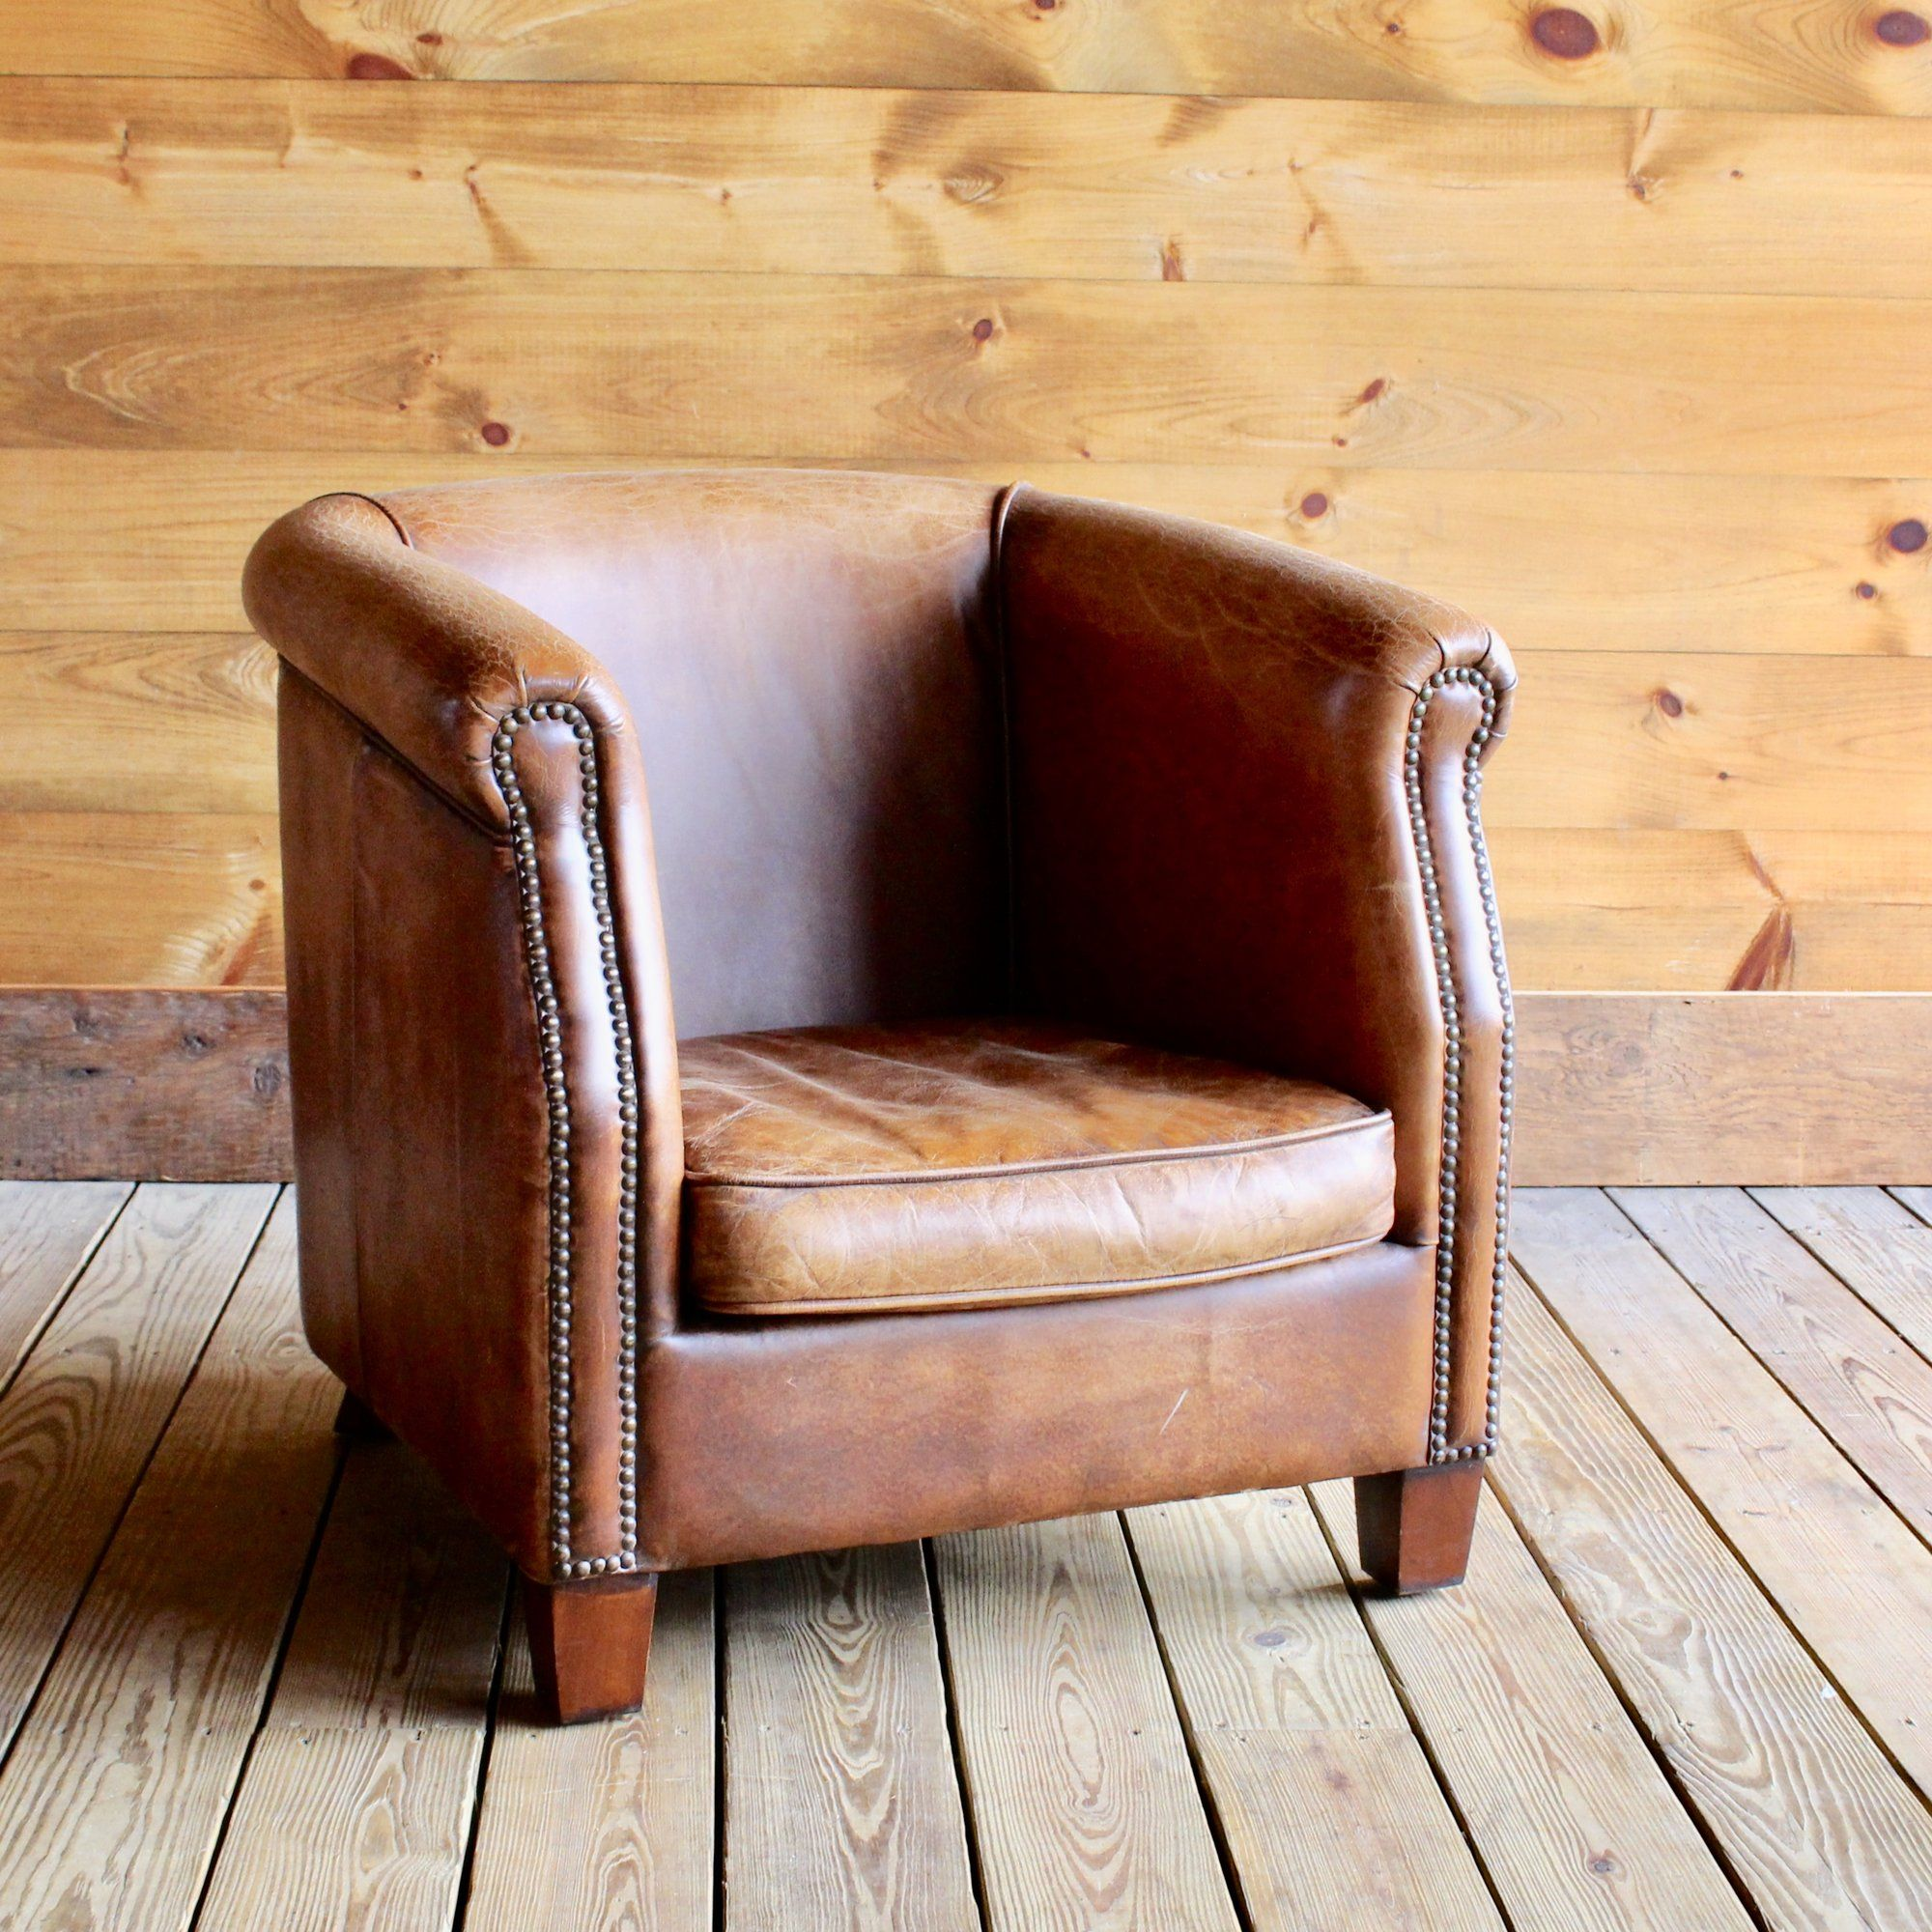 Buffalo Leather Barrel Chair Dartbrook Rustic Goods Adirondacks Barrel Chair Chair Buffalo Leather